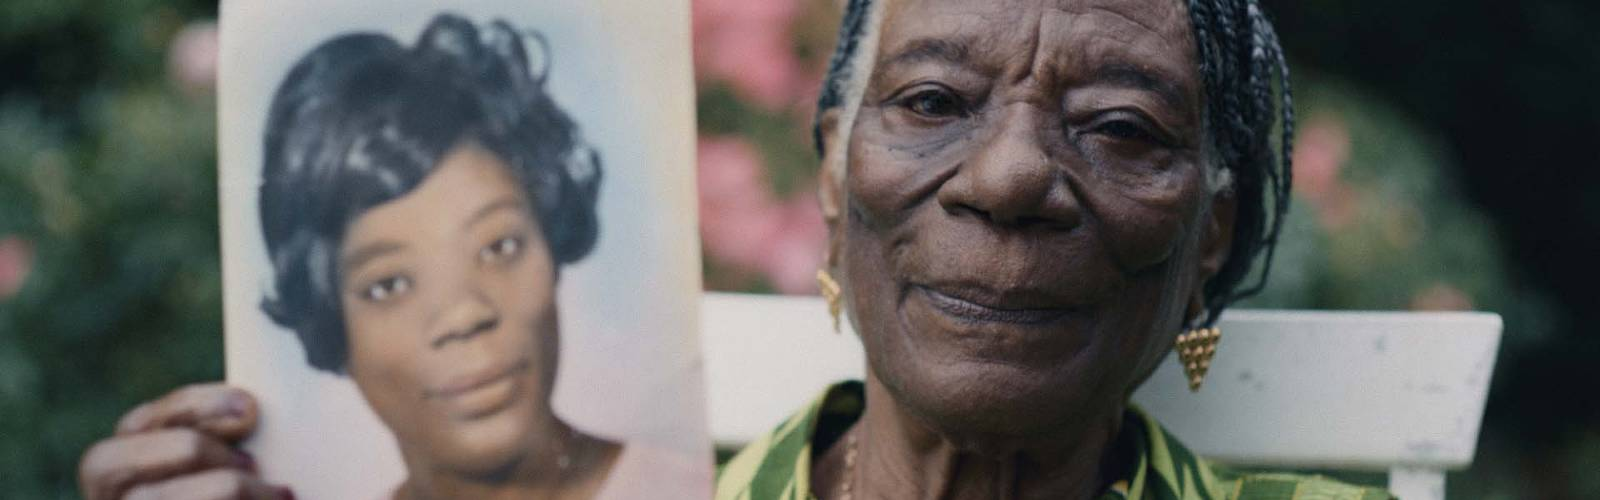 Linneth, an older Black woman, holds up a photo of herself from when she was young